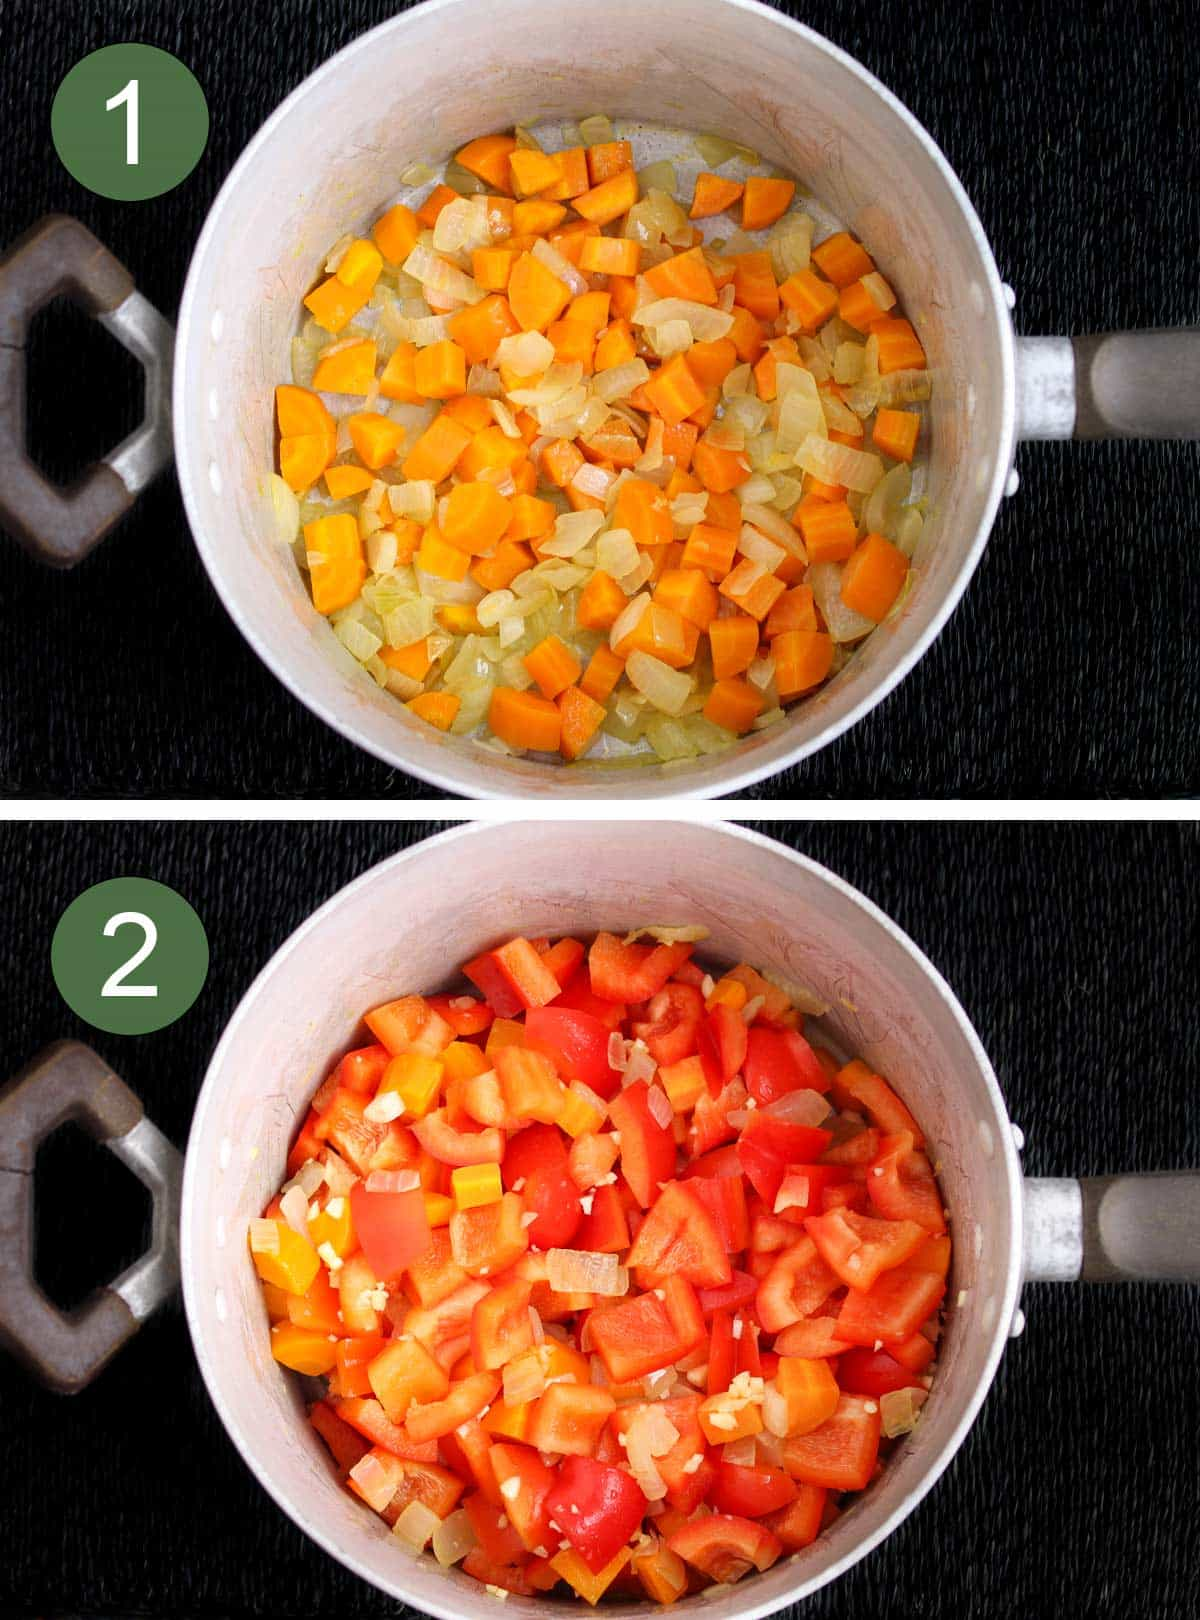 Process Shots of Frying Vegetables in Large Soup Pan